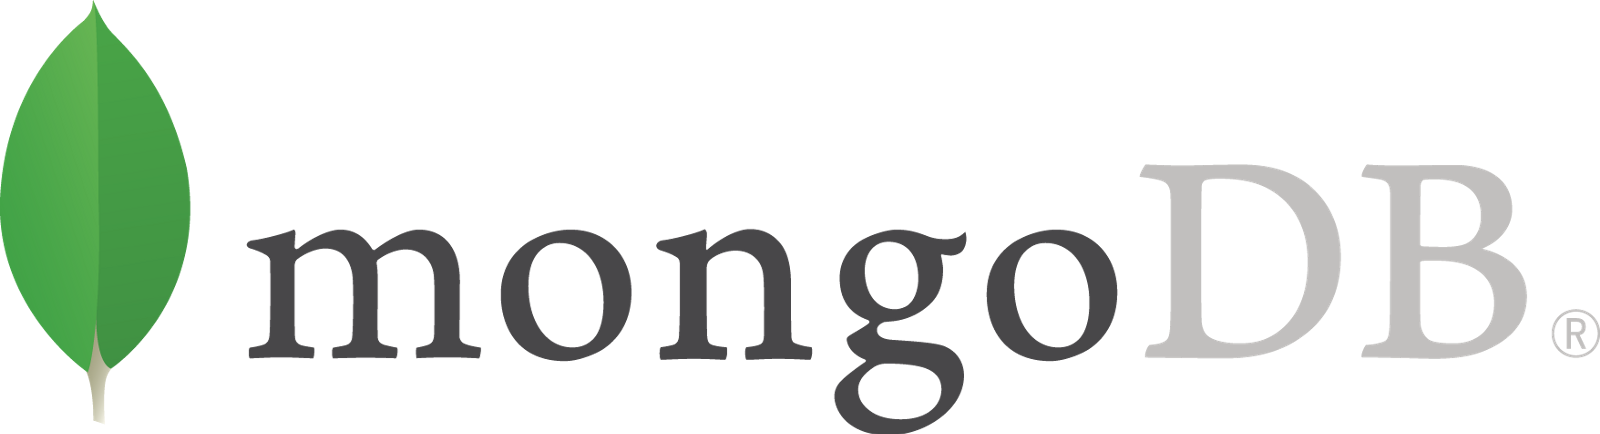 How to install and secure MongoDB in Amazon EC2 in minutes? - By